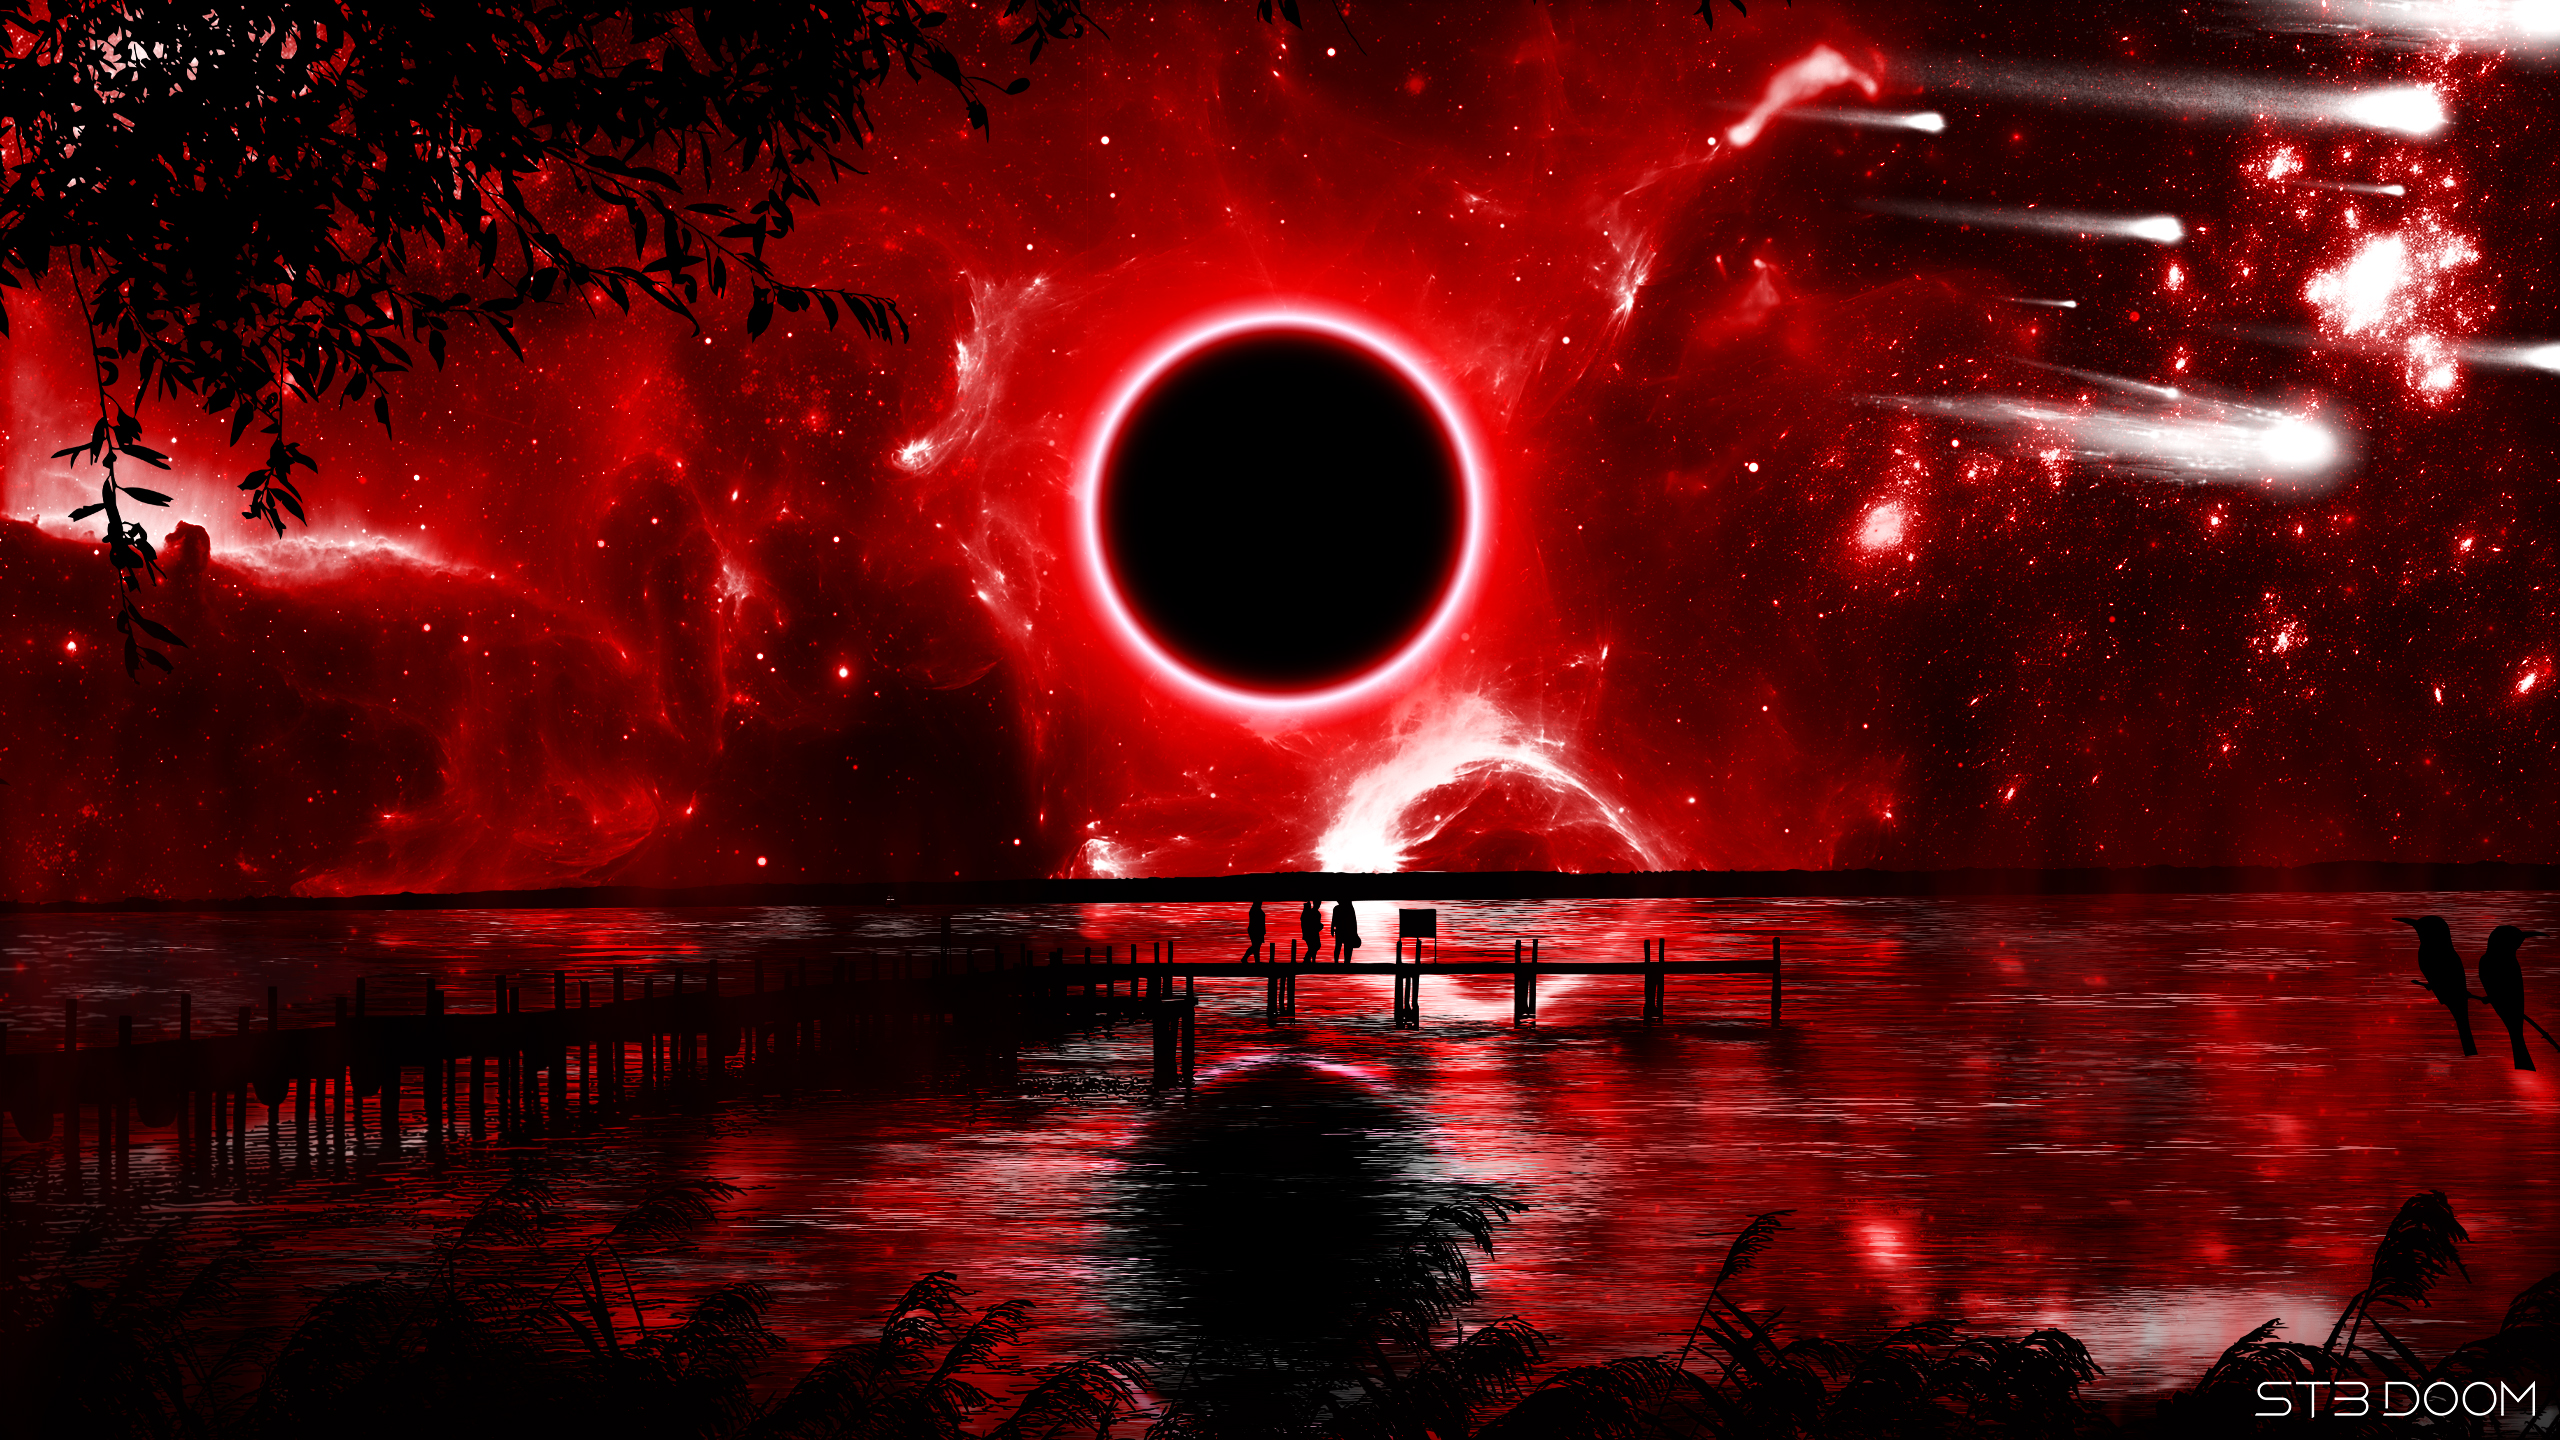 Red Eclipse Hd Wallpaper Background Image 2560x1440 Id 1112101 Wallpaper Abyss